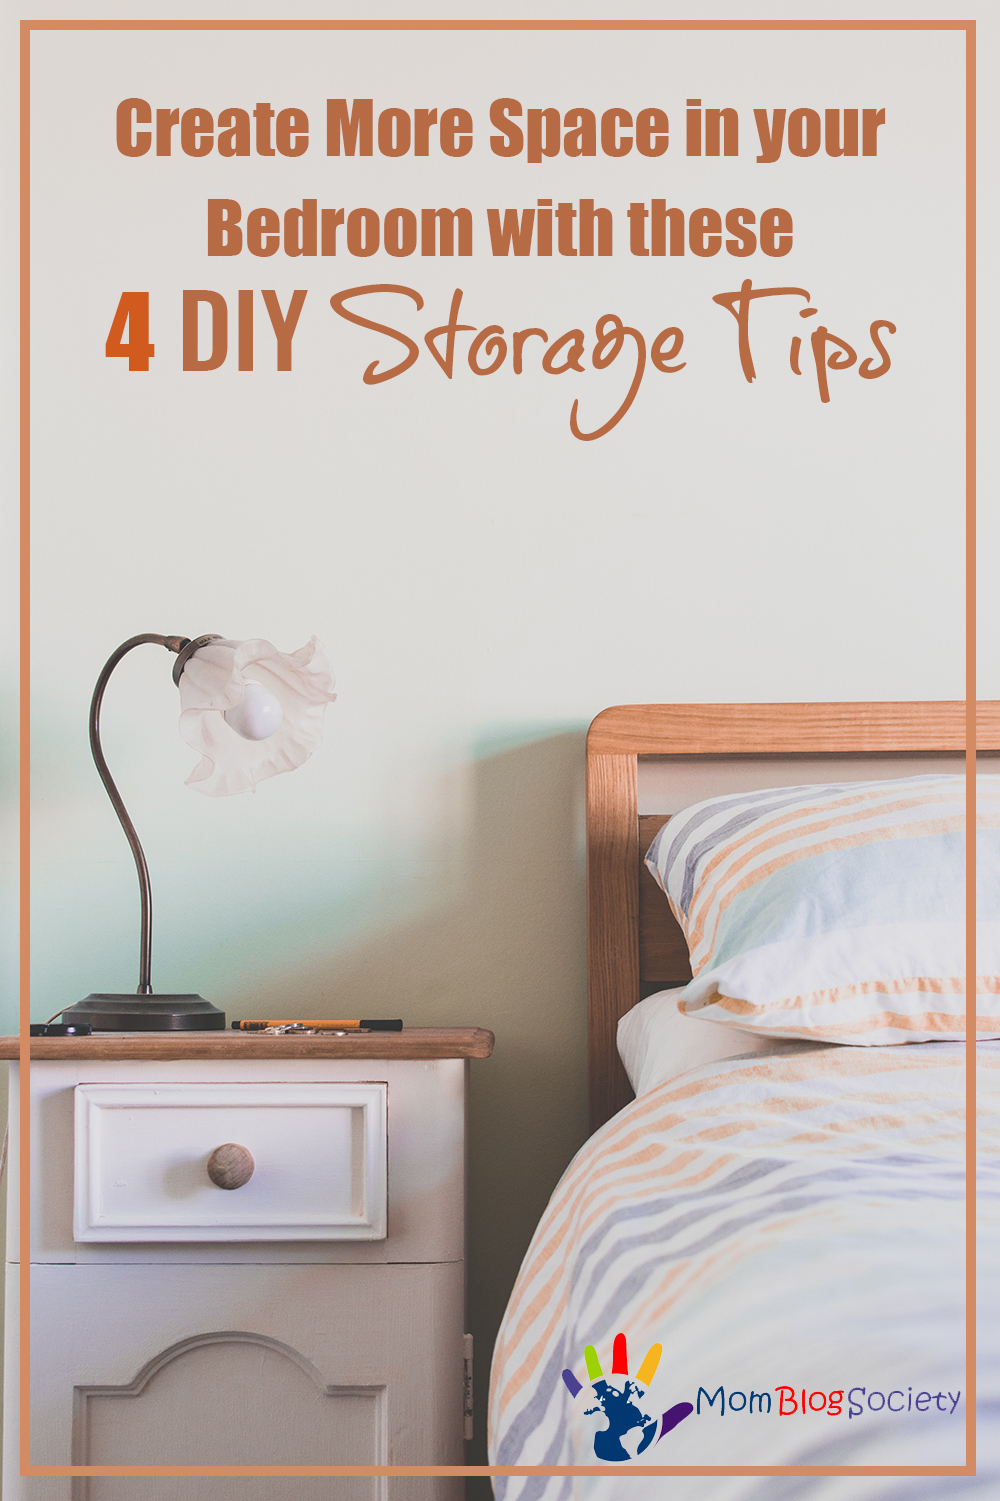 Create More Space in your Bedroom with these 4 DIY Storage Tips